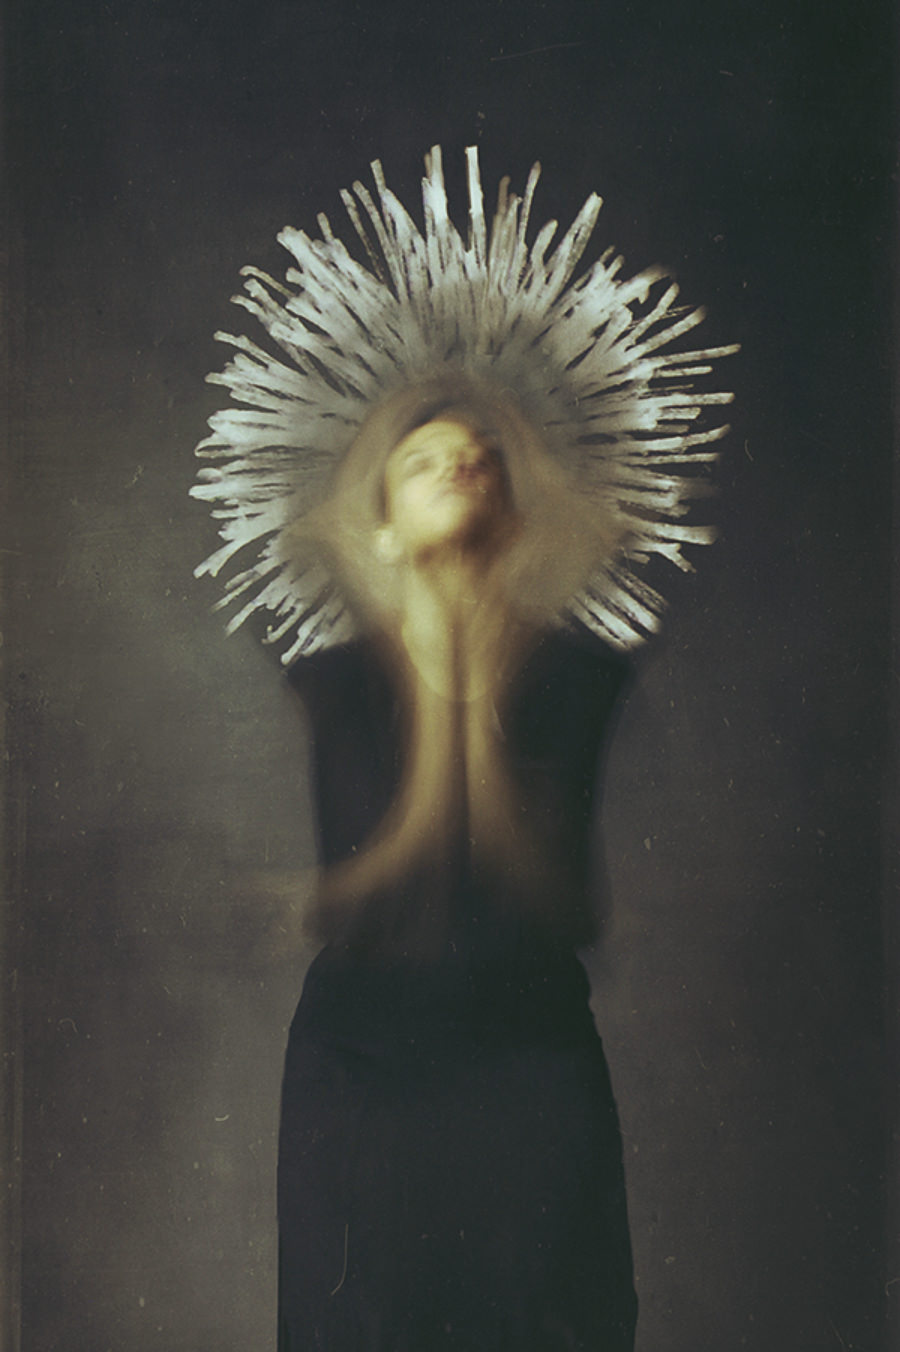 Between Lock and Key by Josephine Cardin